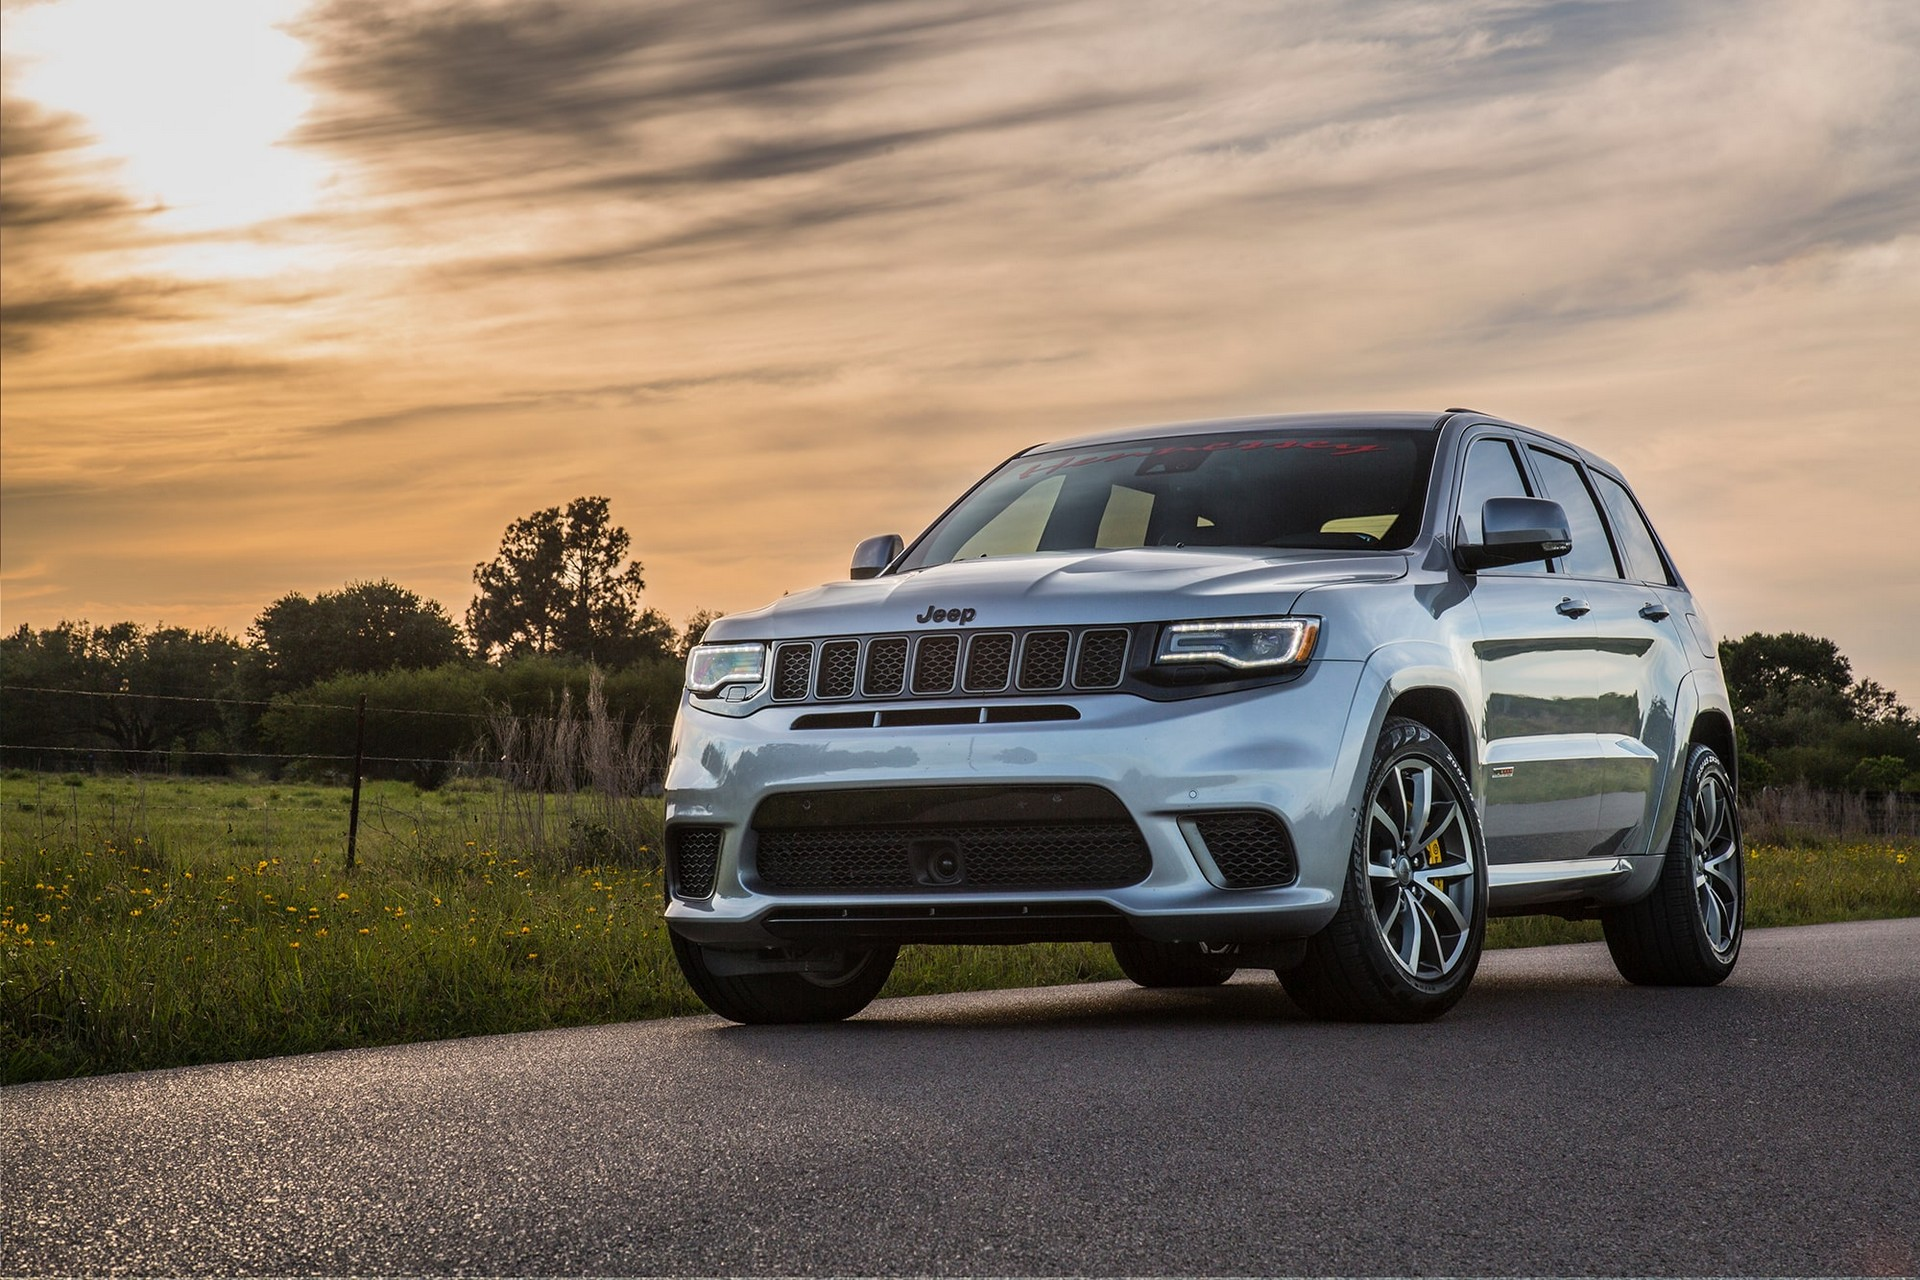 The Trackhawk variant of the Jeep Grand Cherokee is considered among the fastest-going SUVs in the world